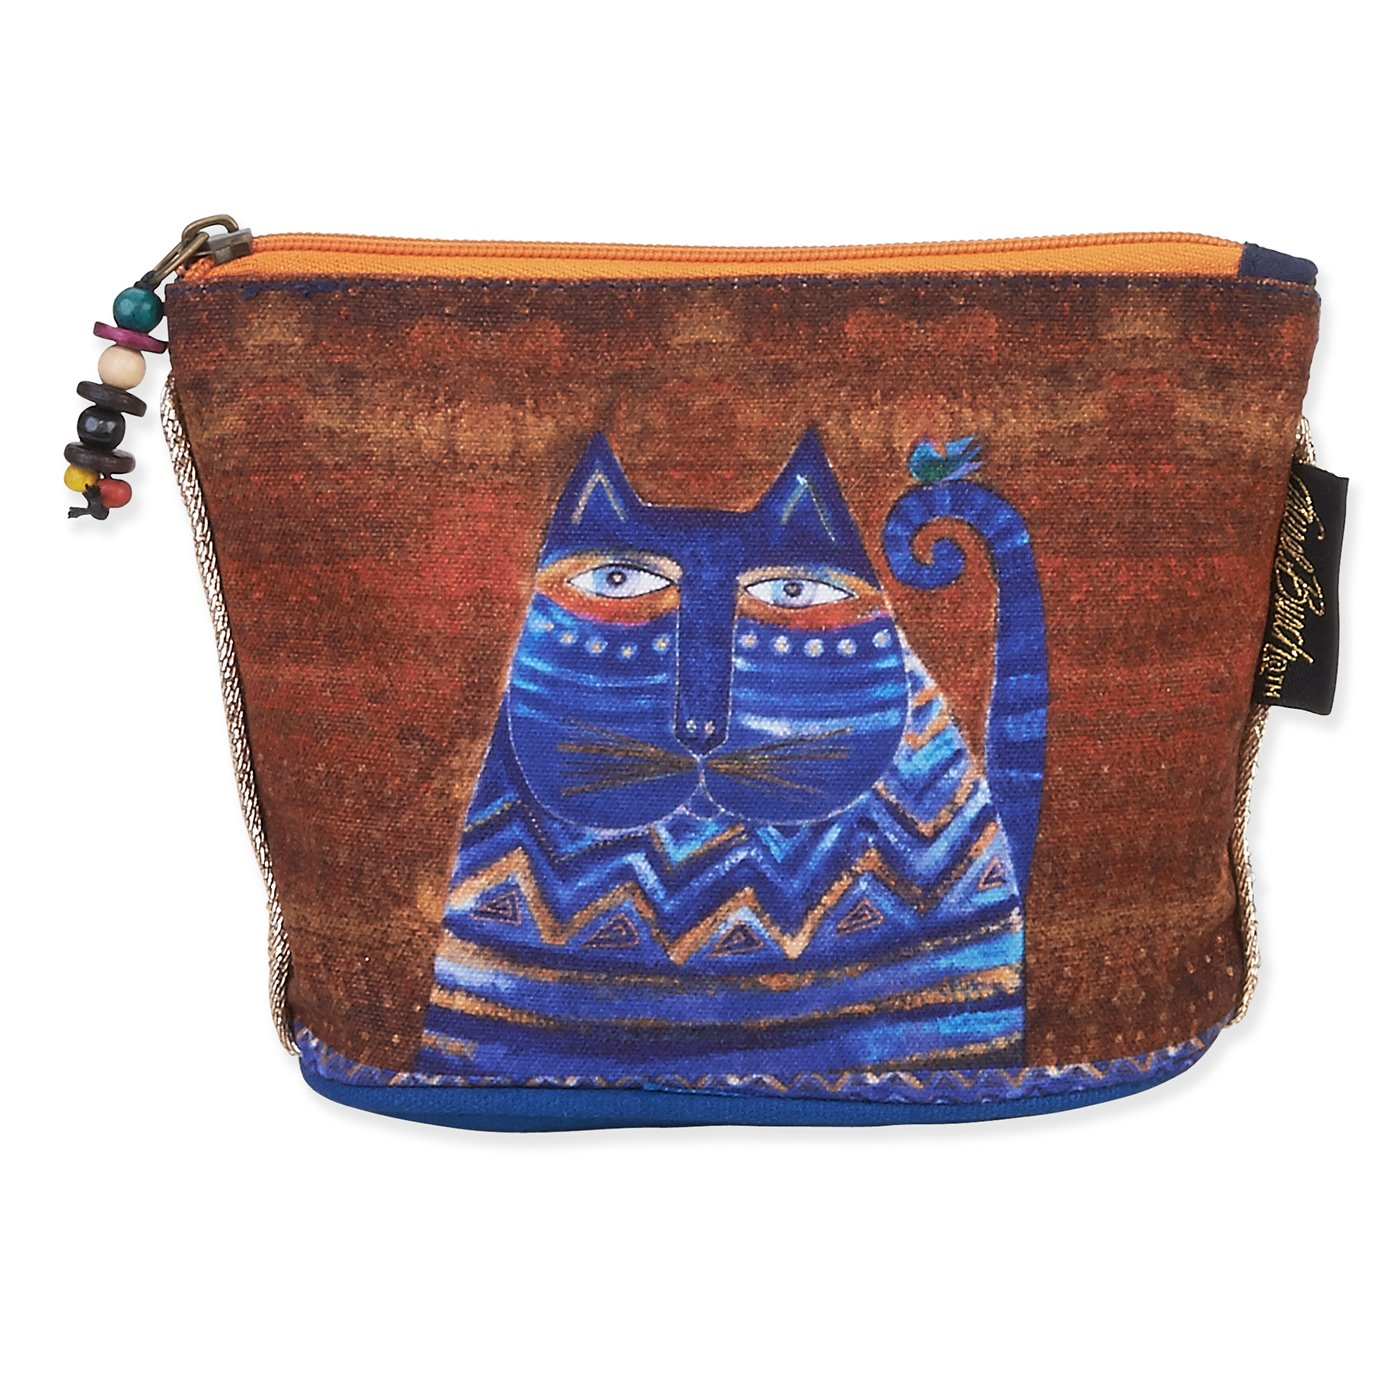 Laurel Burch Feline Mini Cosmetic Bag - blue cat